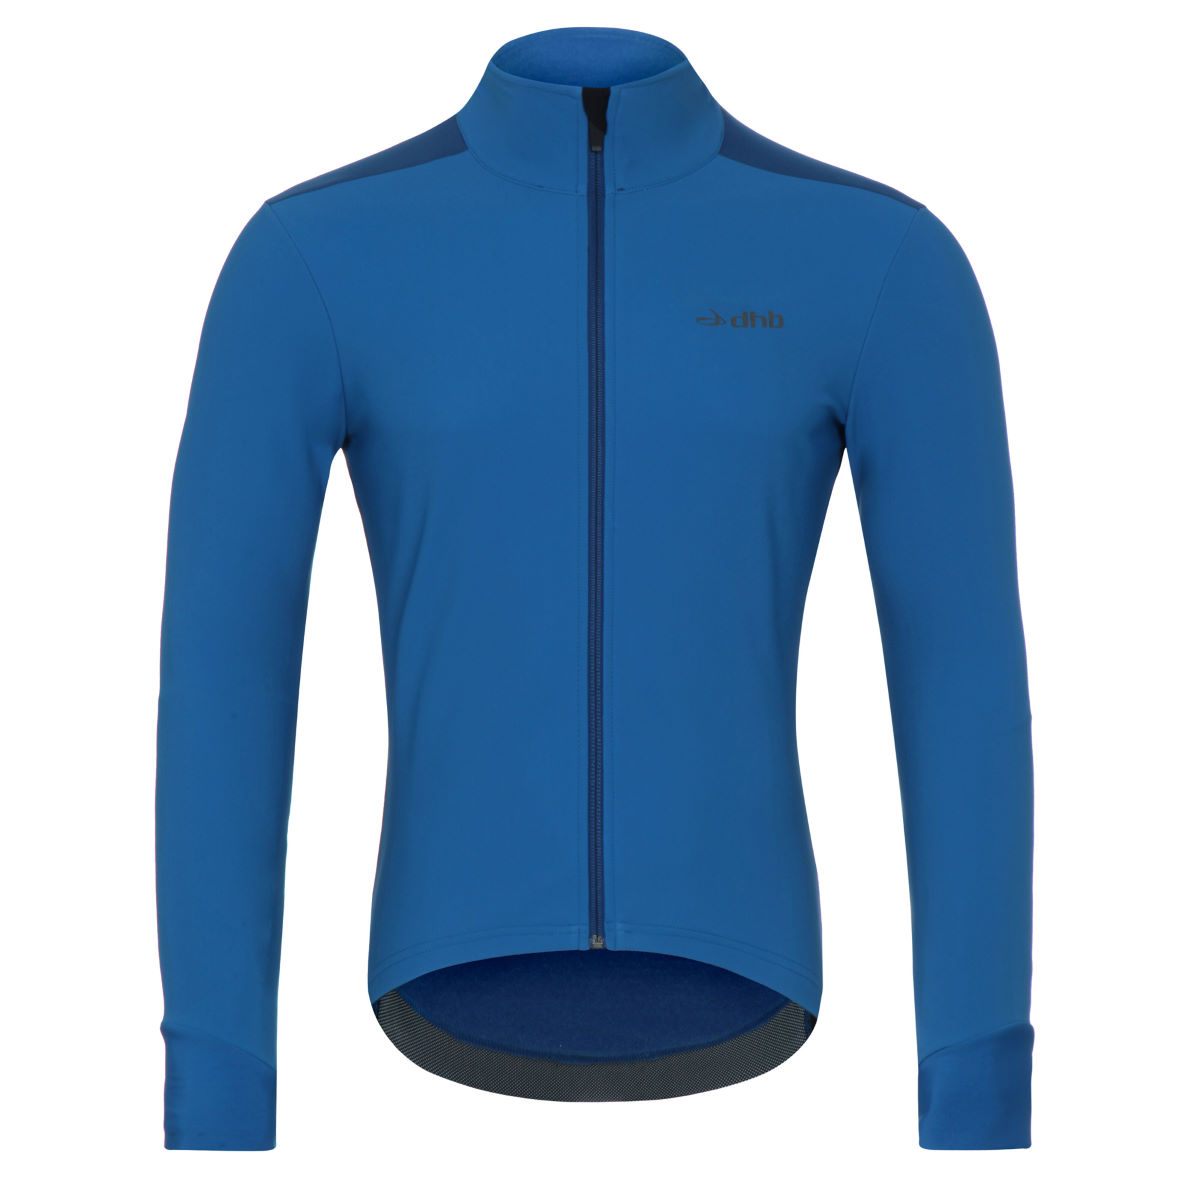 Veste dhb Aeron Hybrid Softshell - Small Blue/Blue Coupe-vents vélo